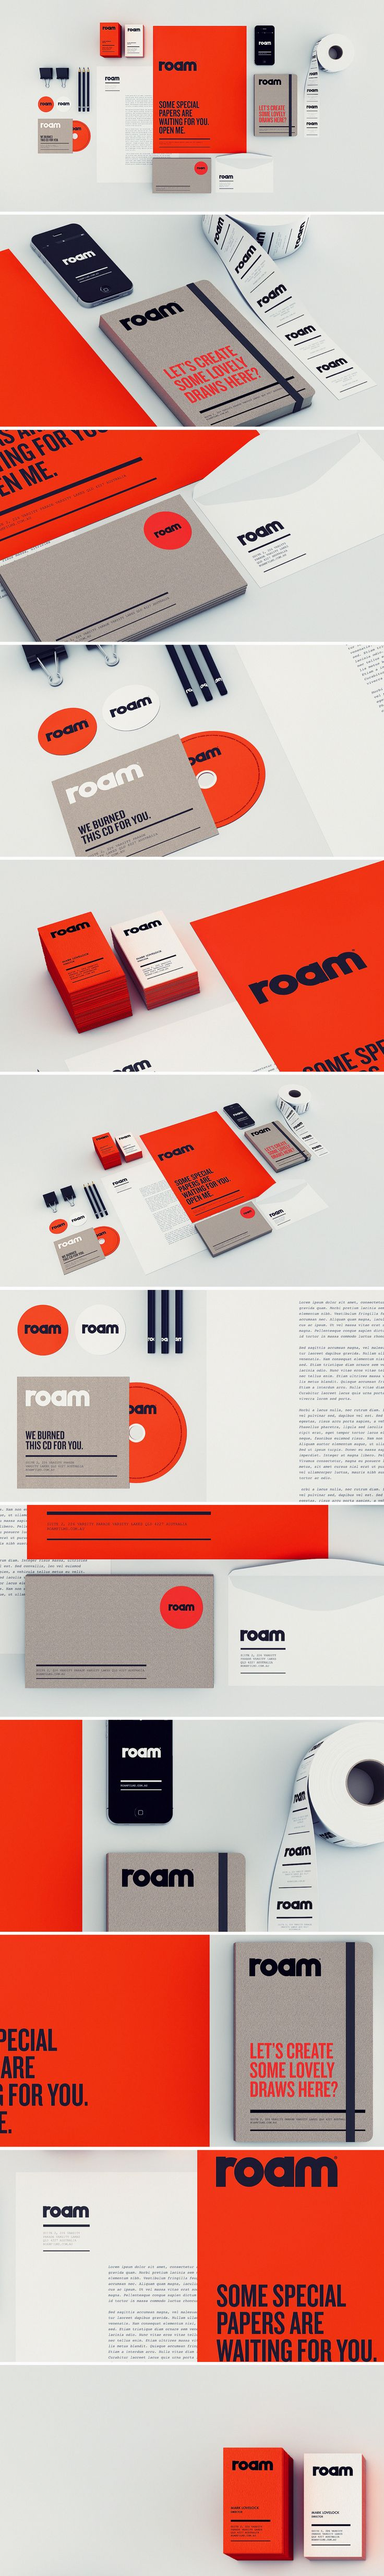 Roam identity minimal and bold color palette is effective, interesting type treatment as well.